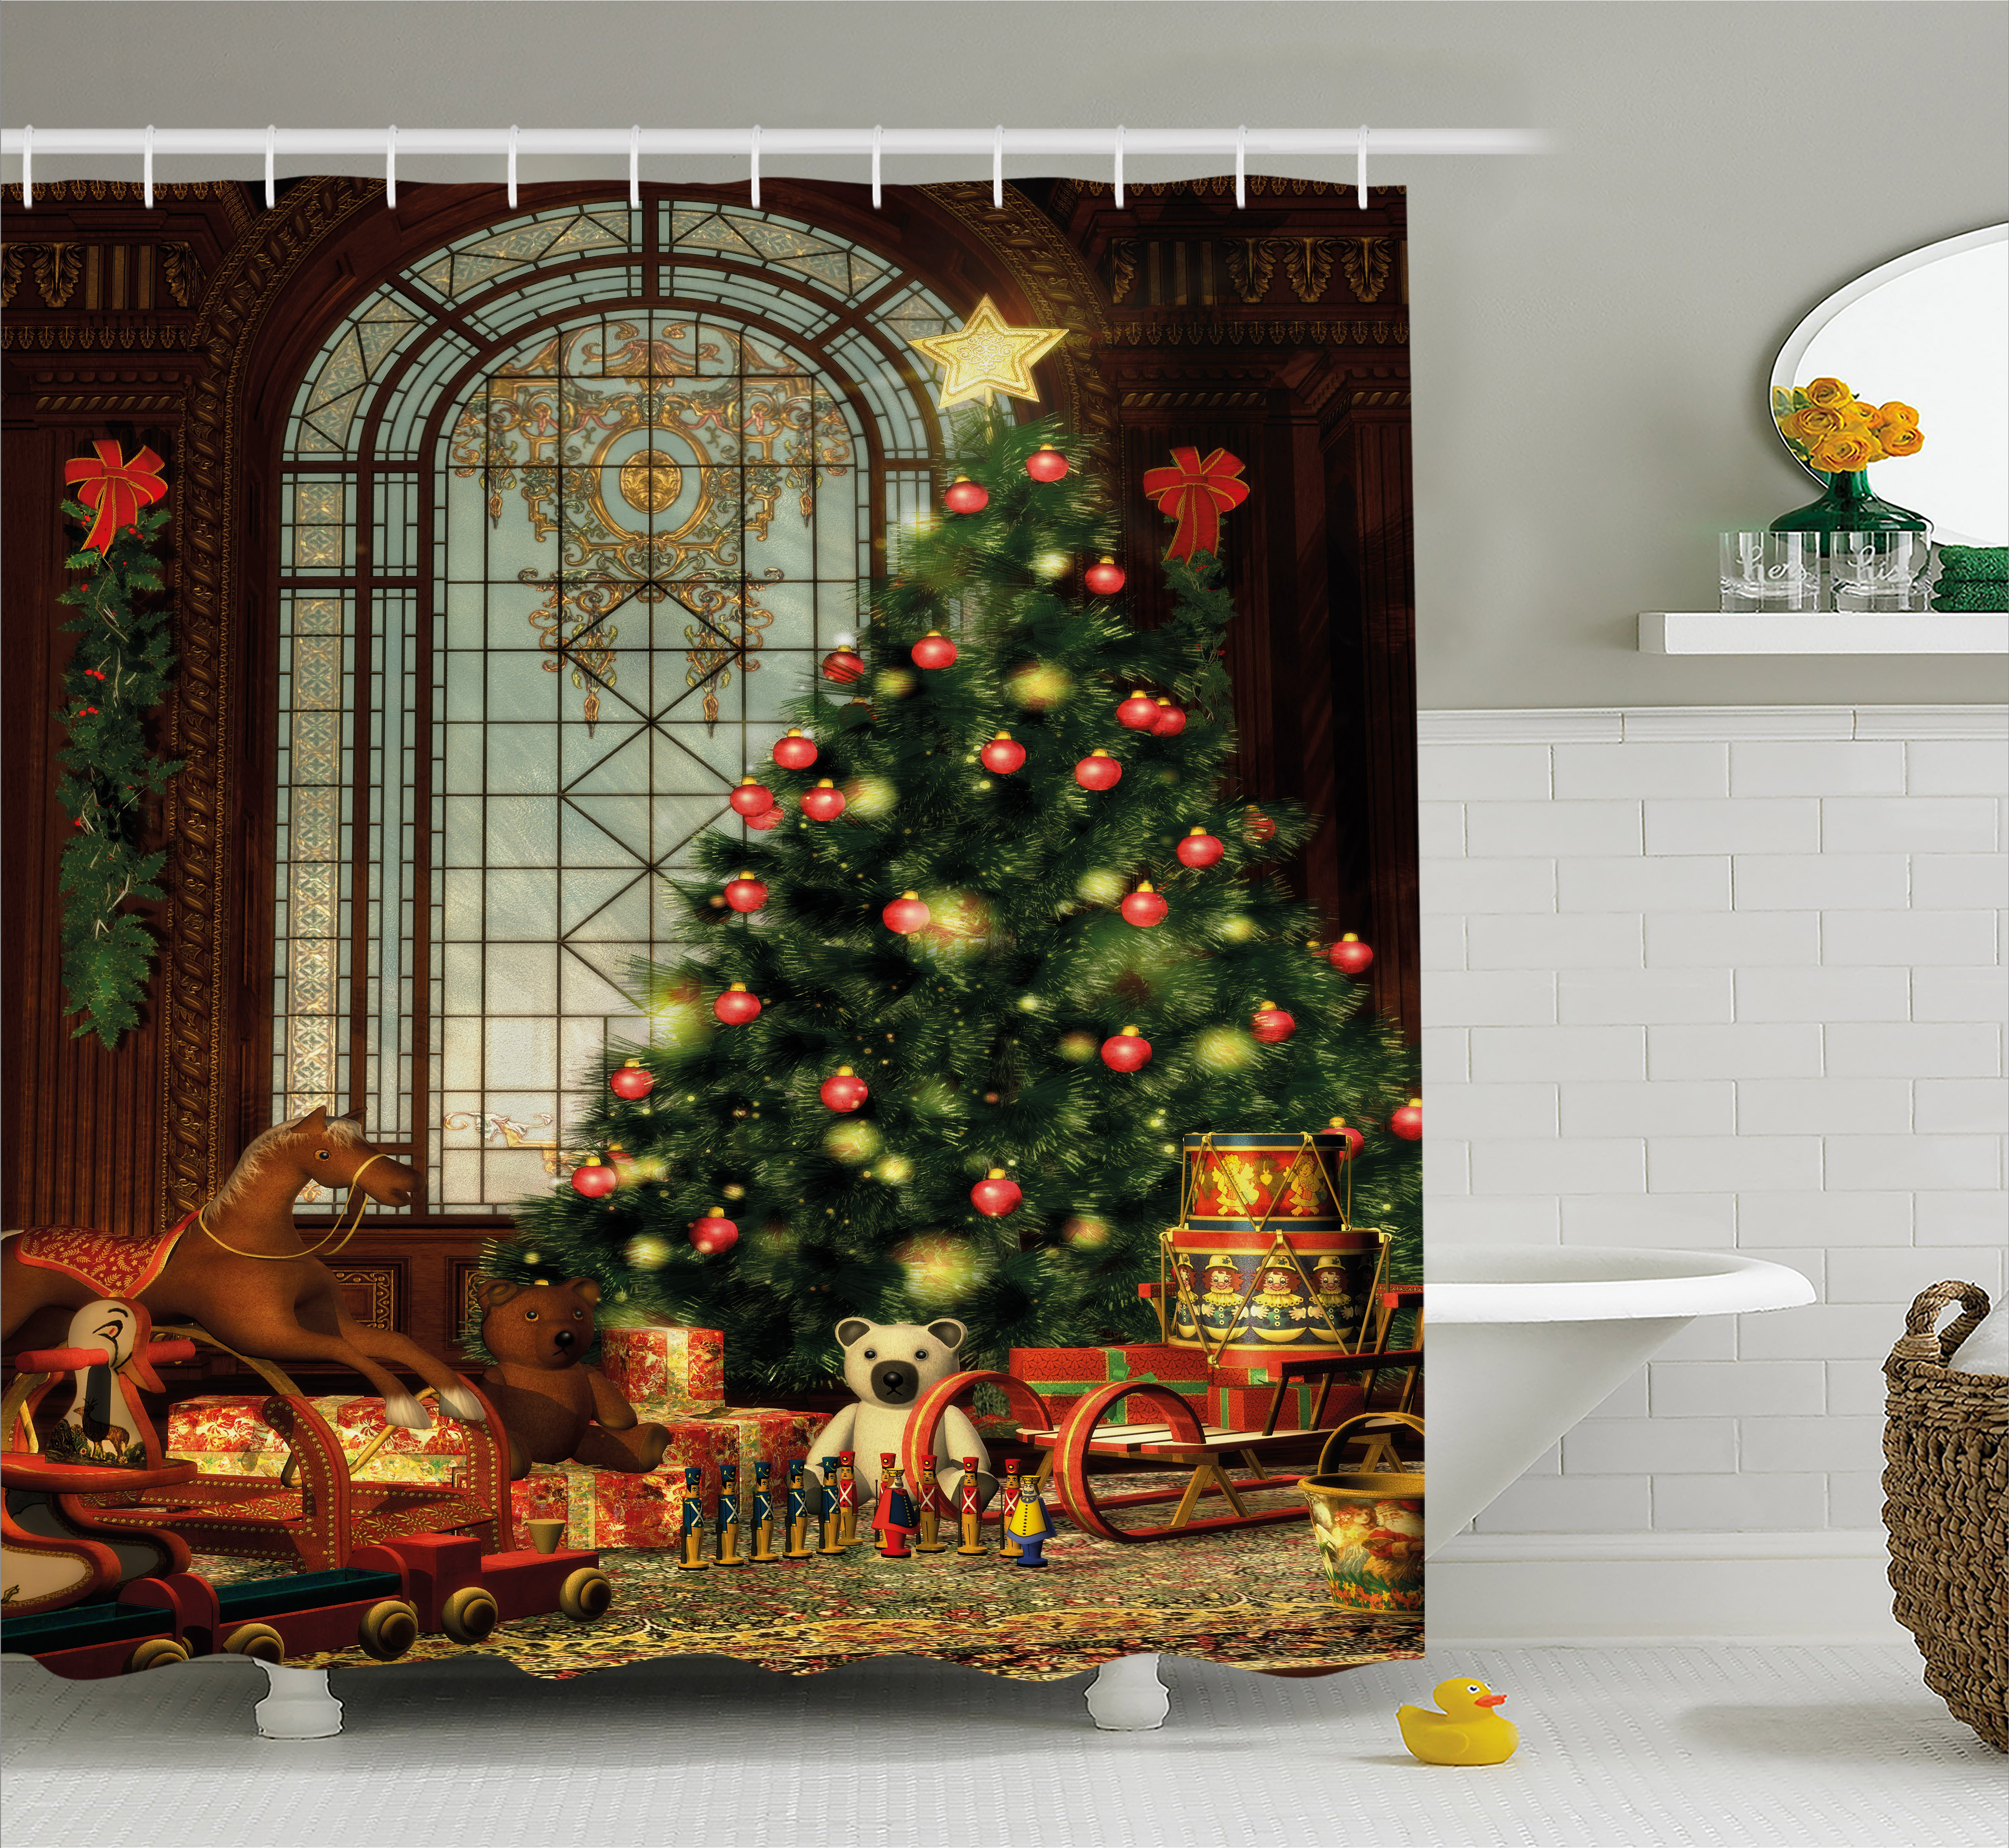 Christmas Shower Curtain.Christmas Shower Curtain Tree Old Fashioned Window Presents Various